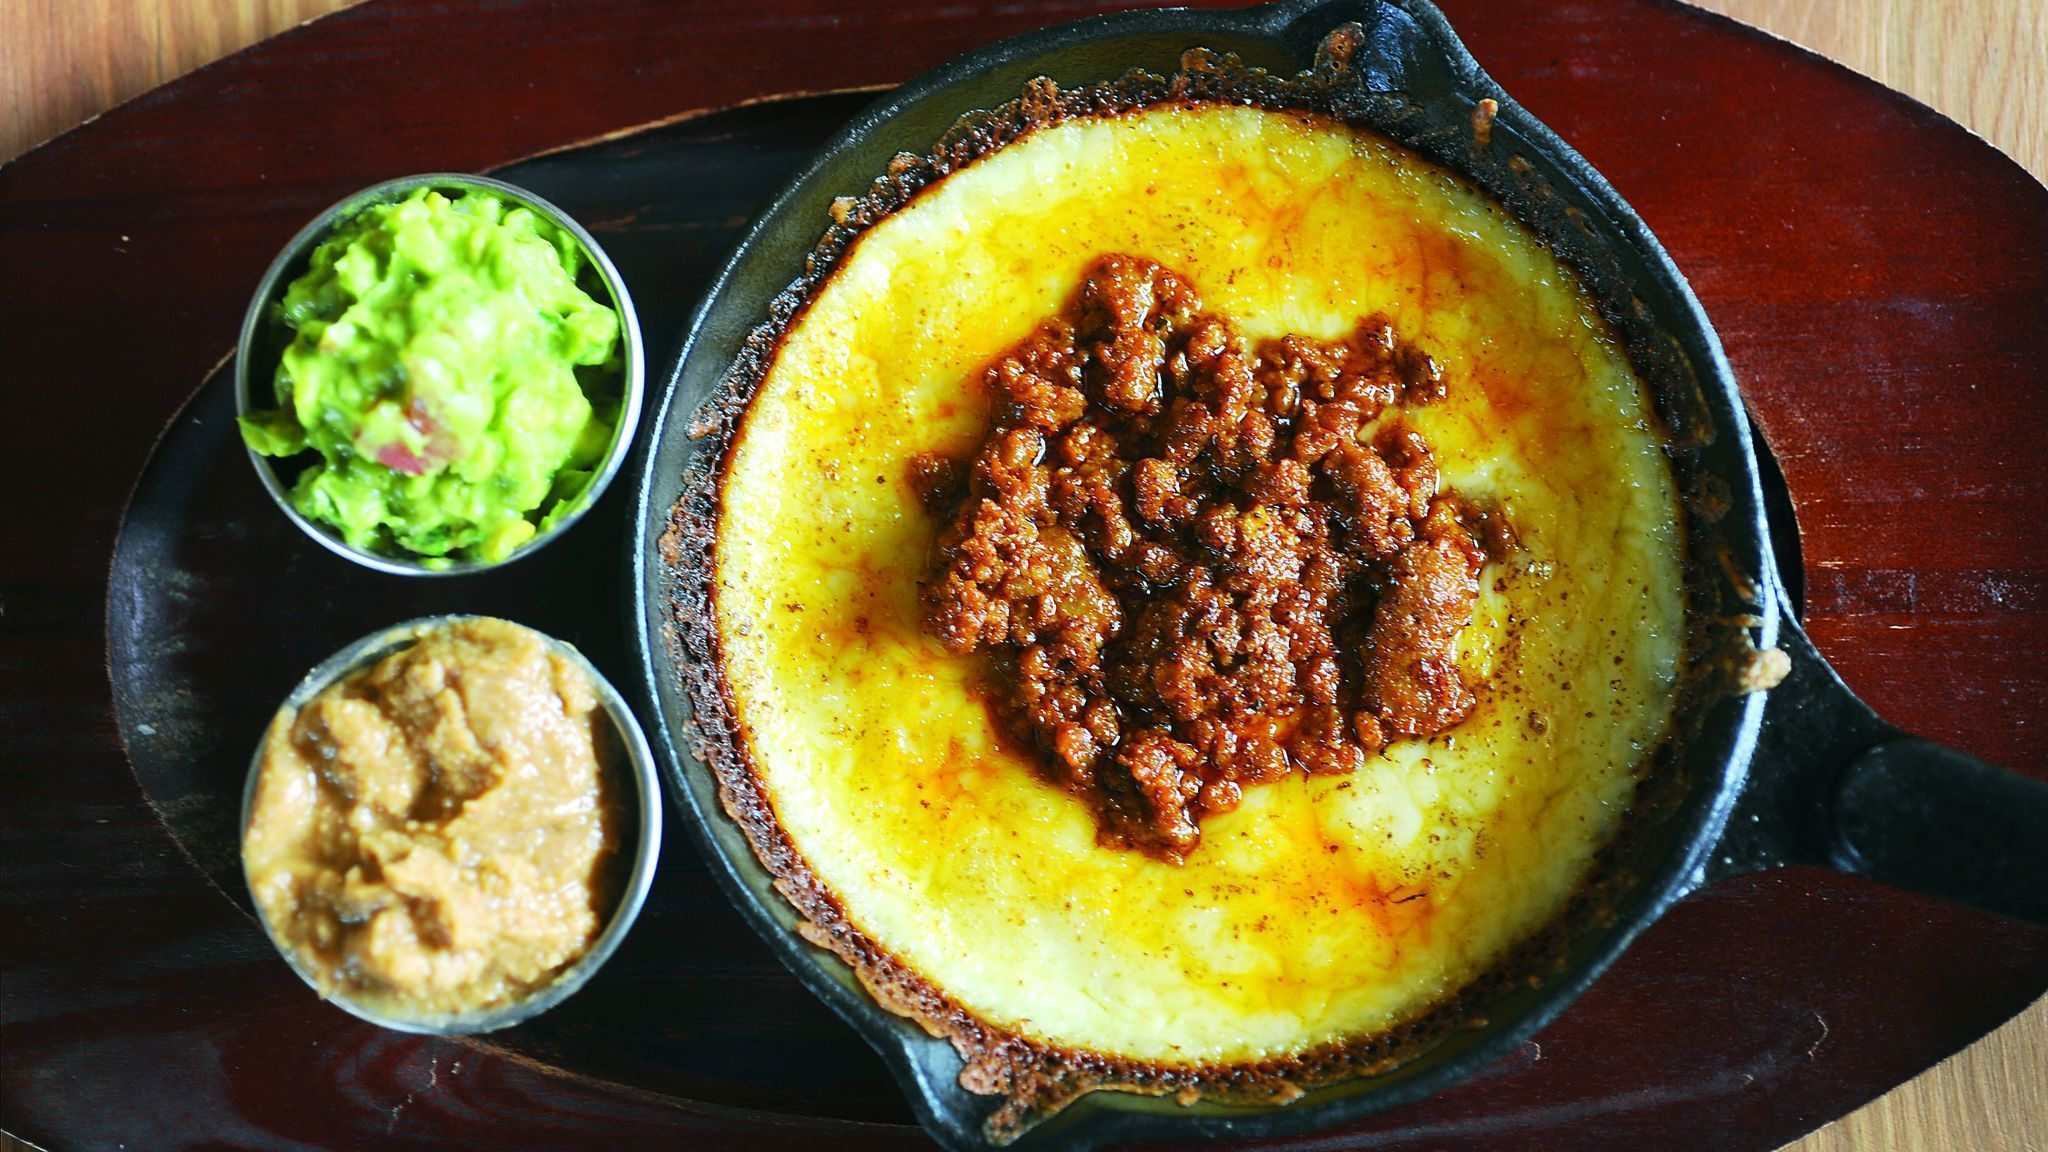 Baltimore, MD-7/9/15-- Queso fundido is on the menu at the Clavel restaurant in Remington. Algerina